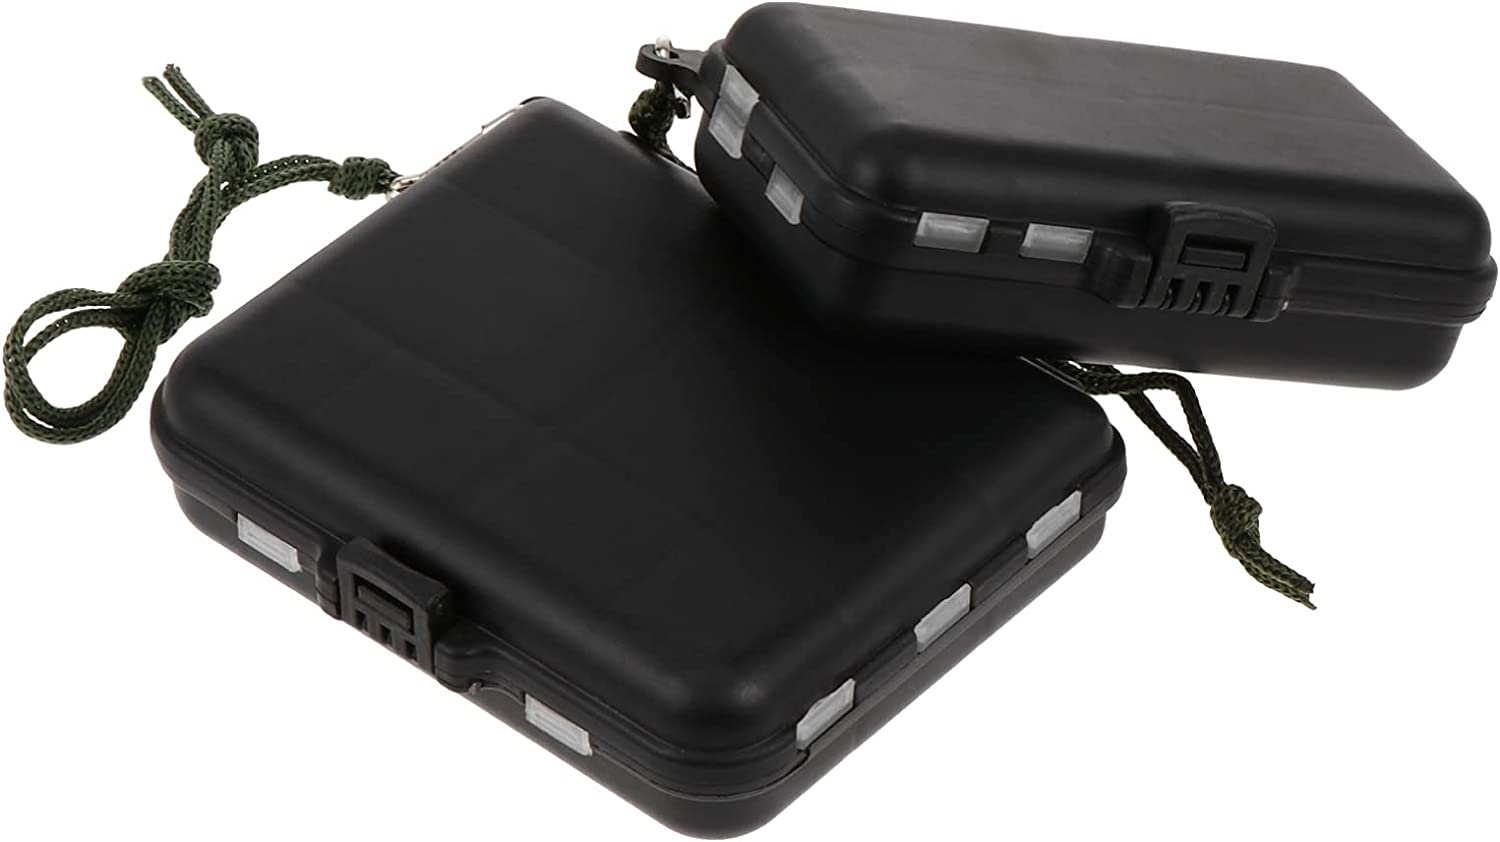 BESPORTBLE 2Pcs Fishing Tackle Container Accessory Boxes safety Translated